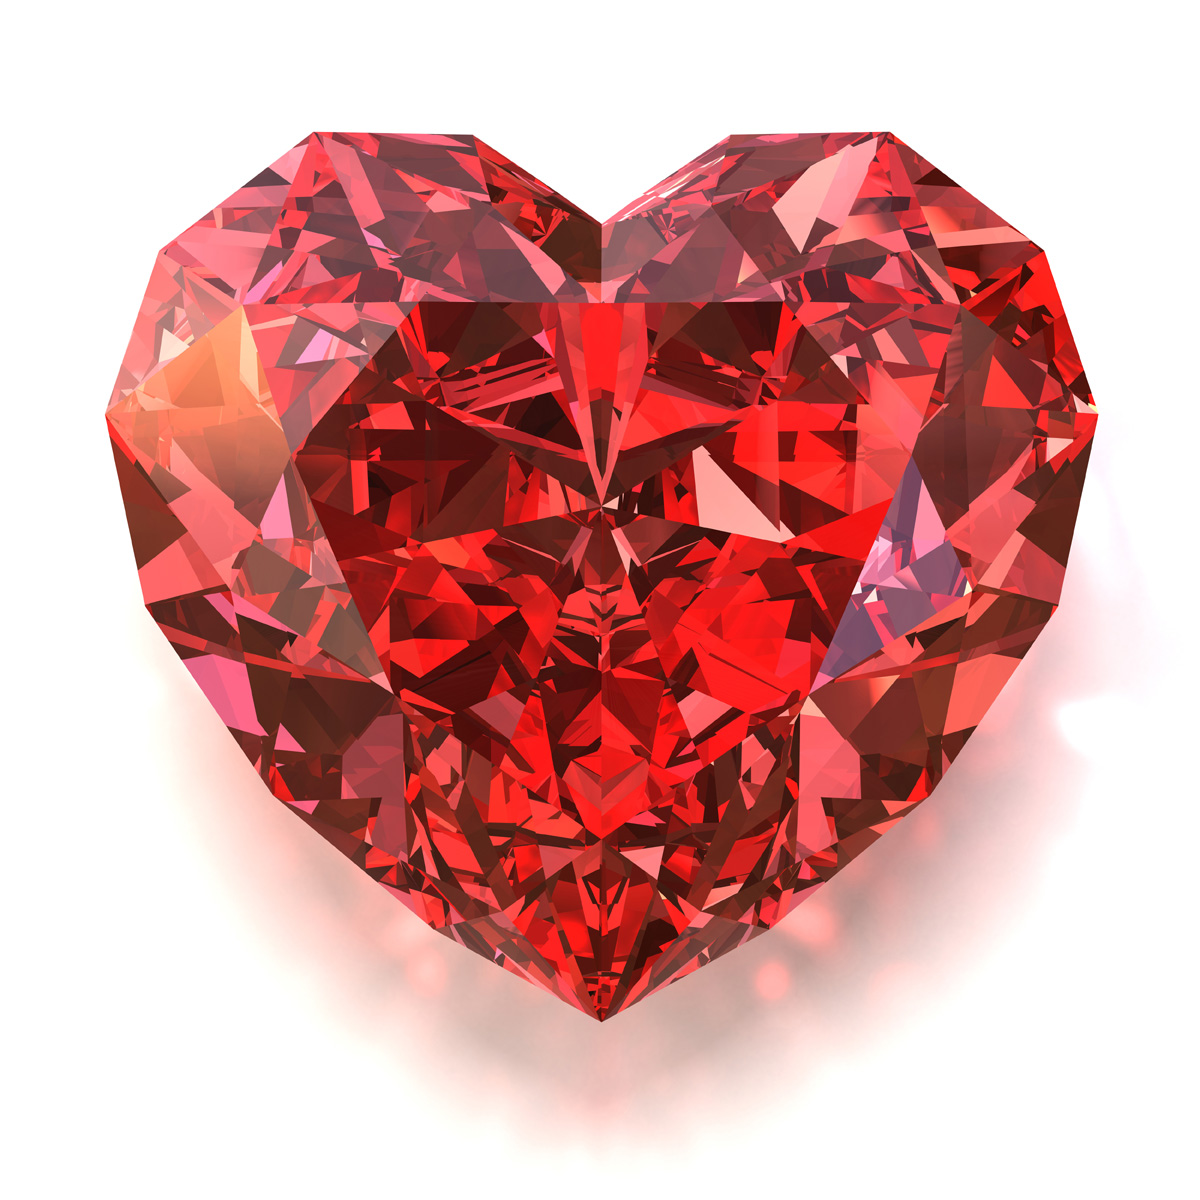 FreeGreatPicture_com-17944-bright-red-heart-shaped-diamond.jpg